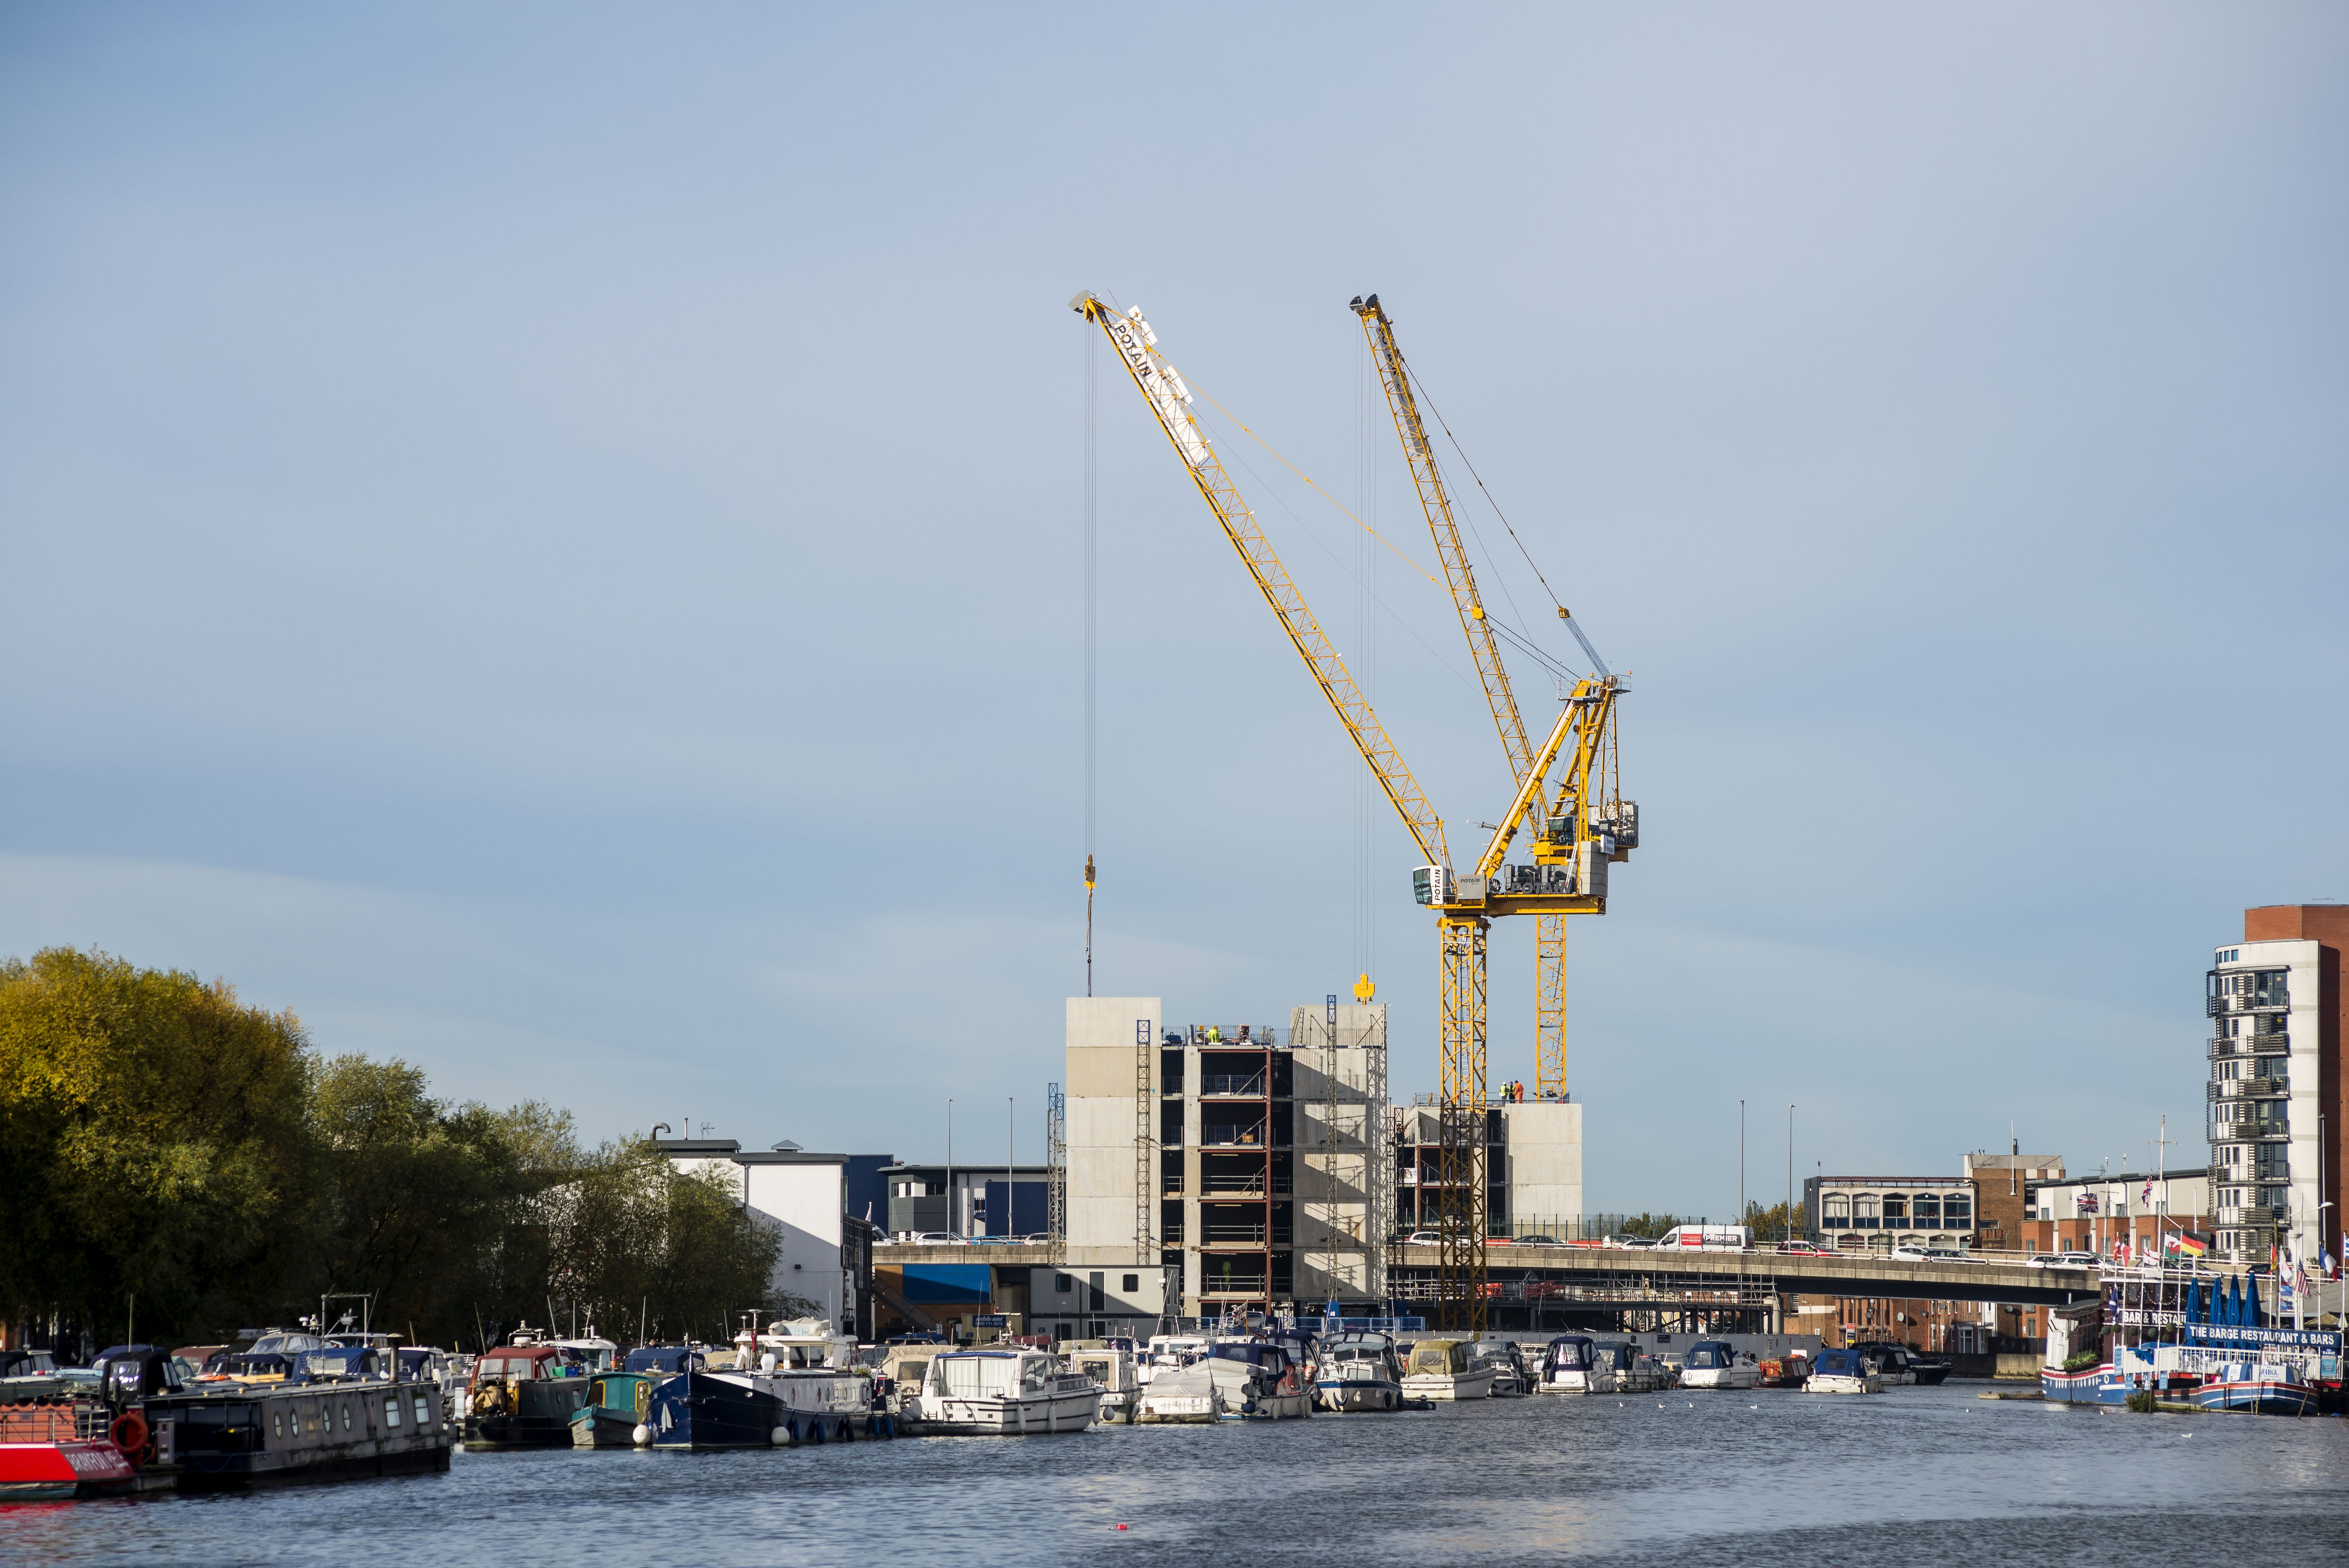 Image of the an accommodation block being built